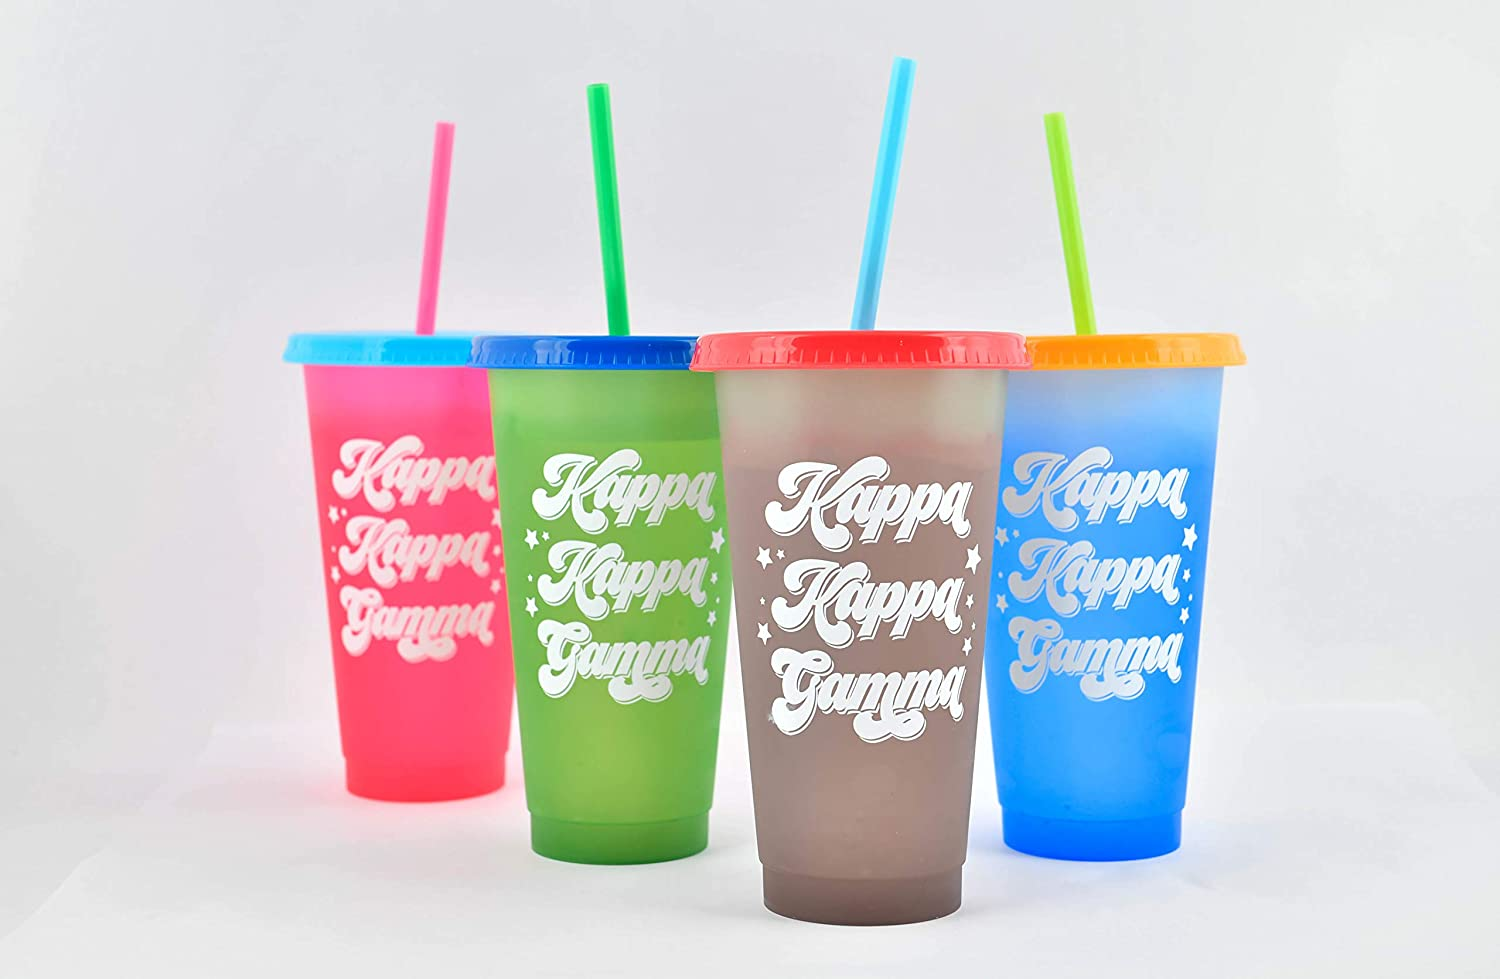 Kappa Kappa Gamma - Color Changing Cups - Retro Style (24 Ounce, 4 per pack)